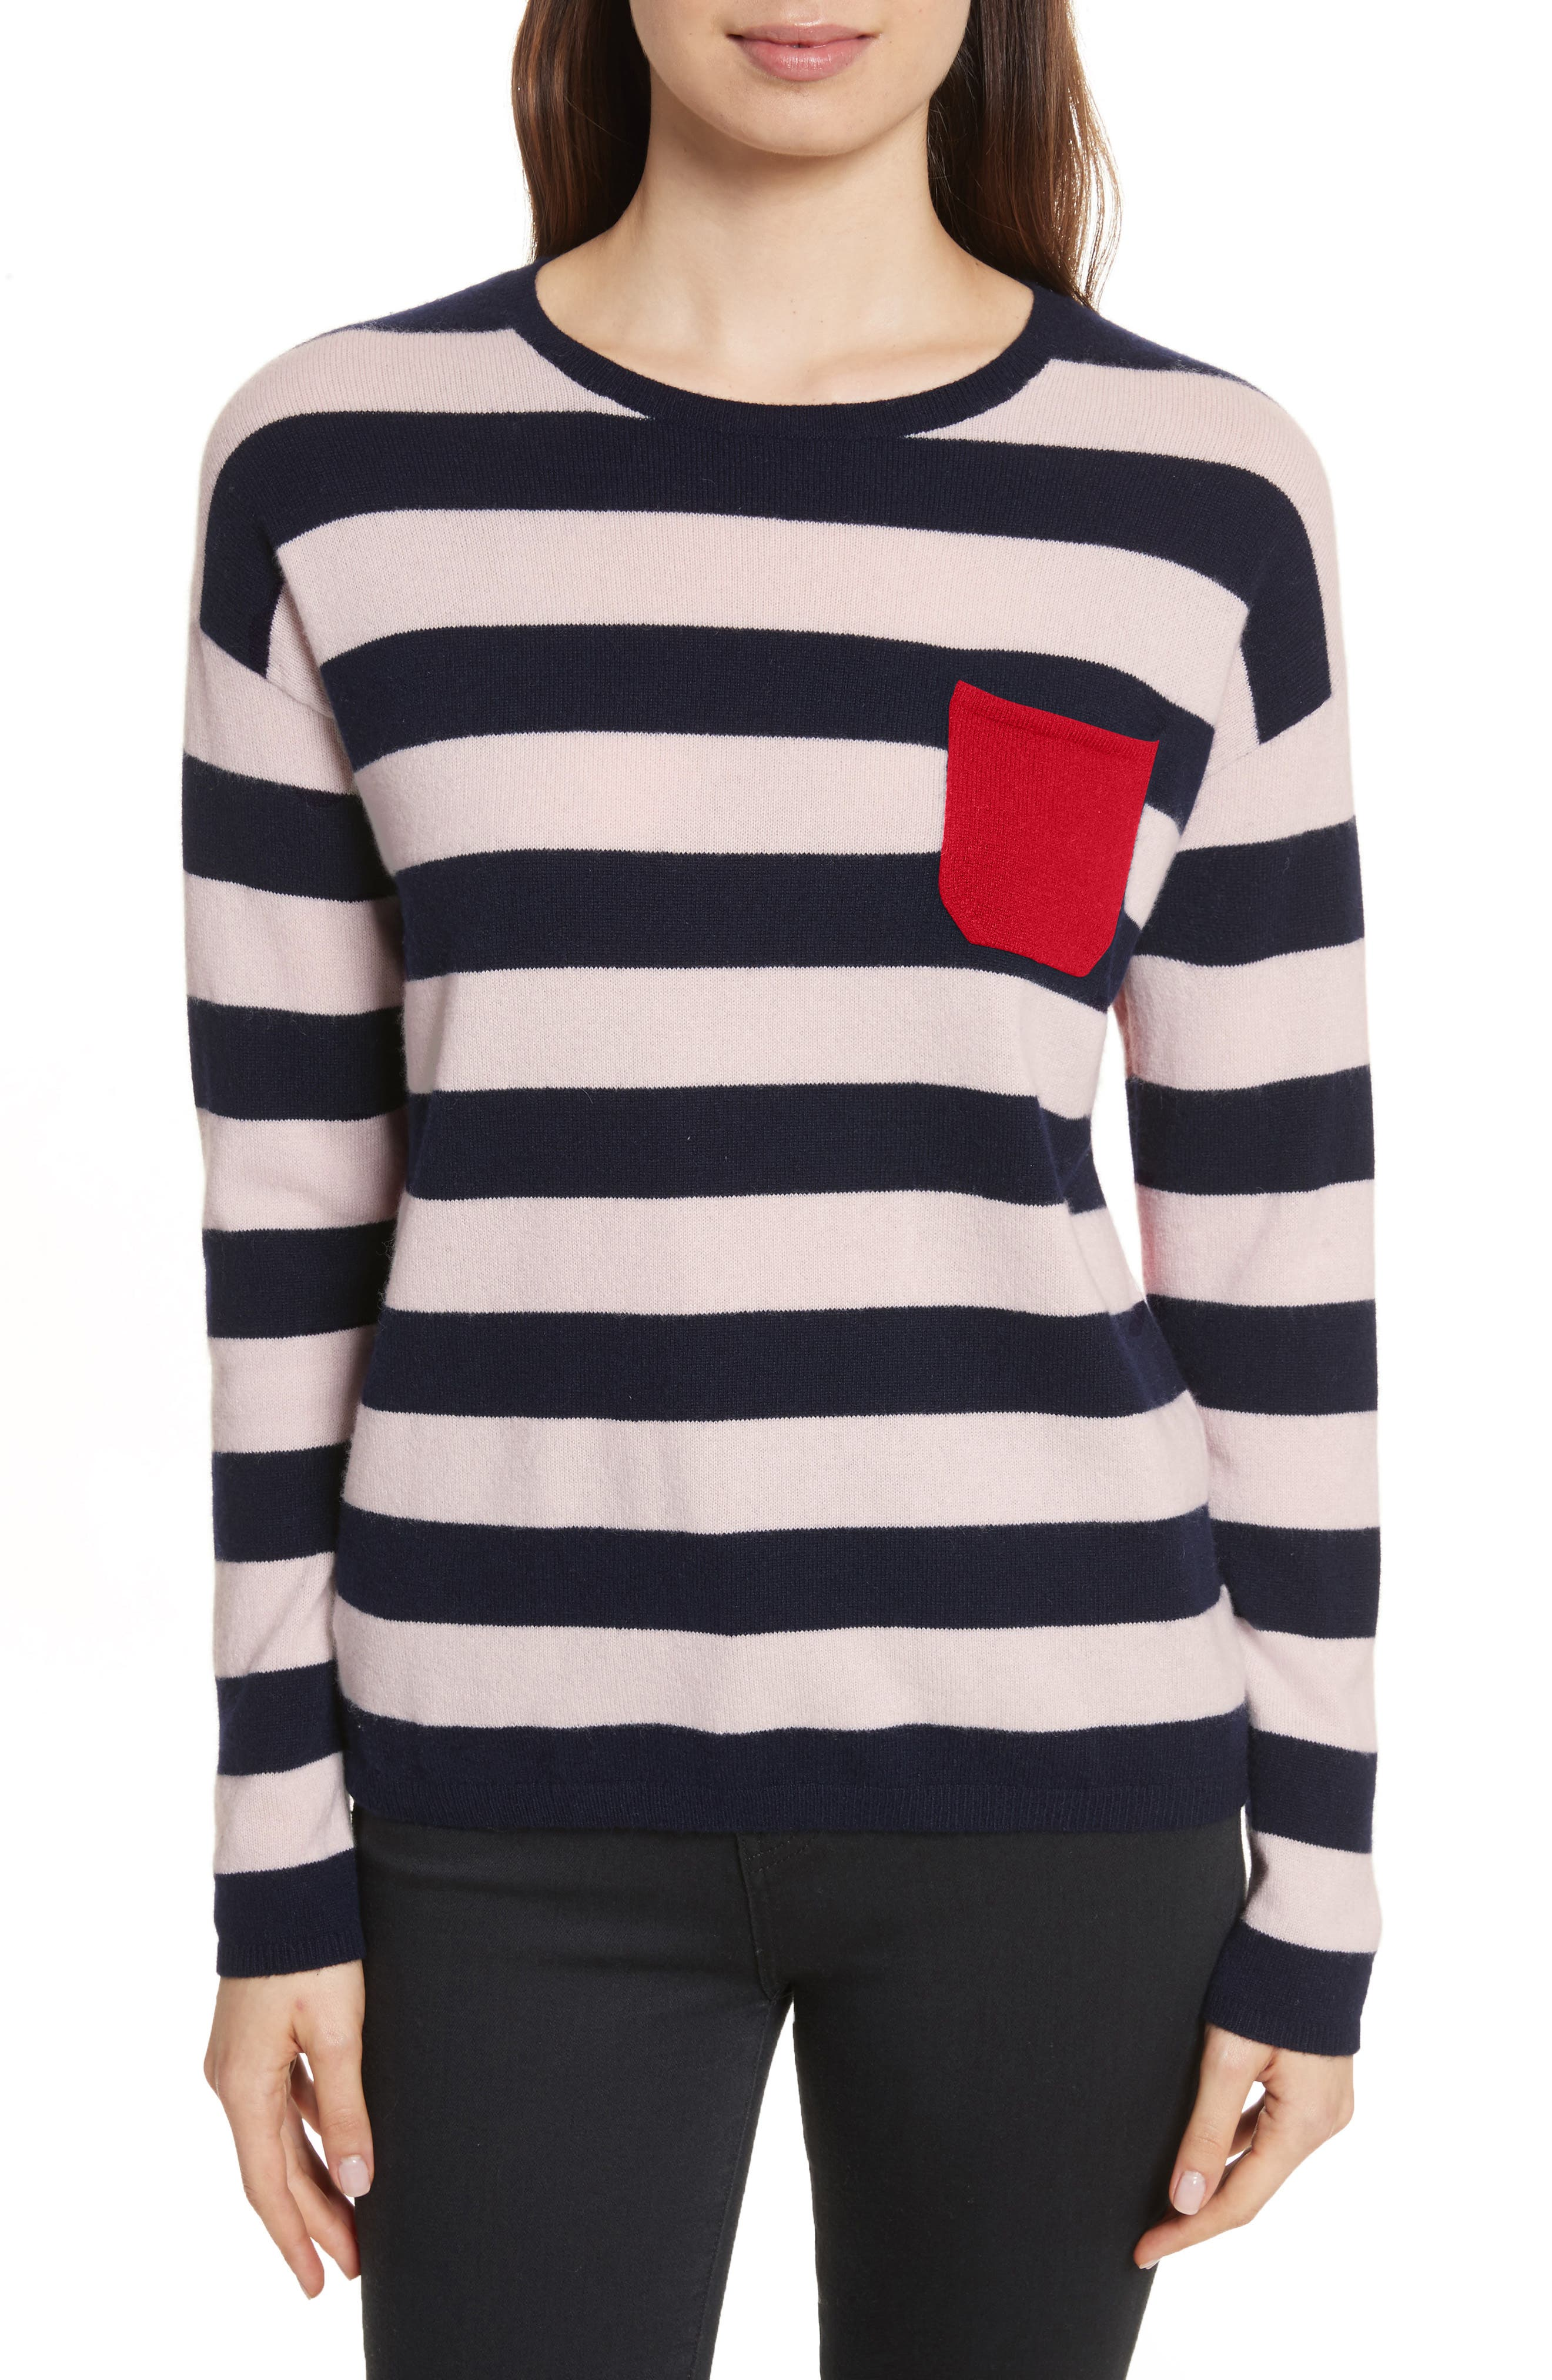 CHINTI & PARKER Navy Pop Stripe Cashmere Sweater,                             Main thumbnail 1, color,                             680